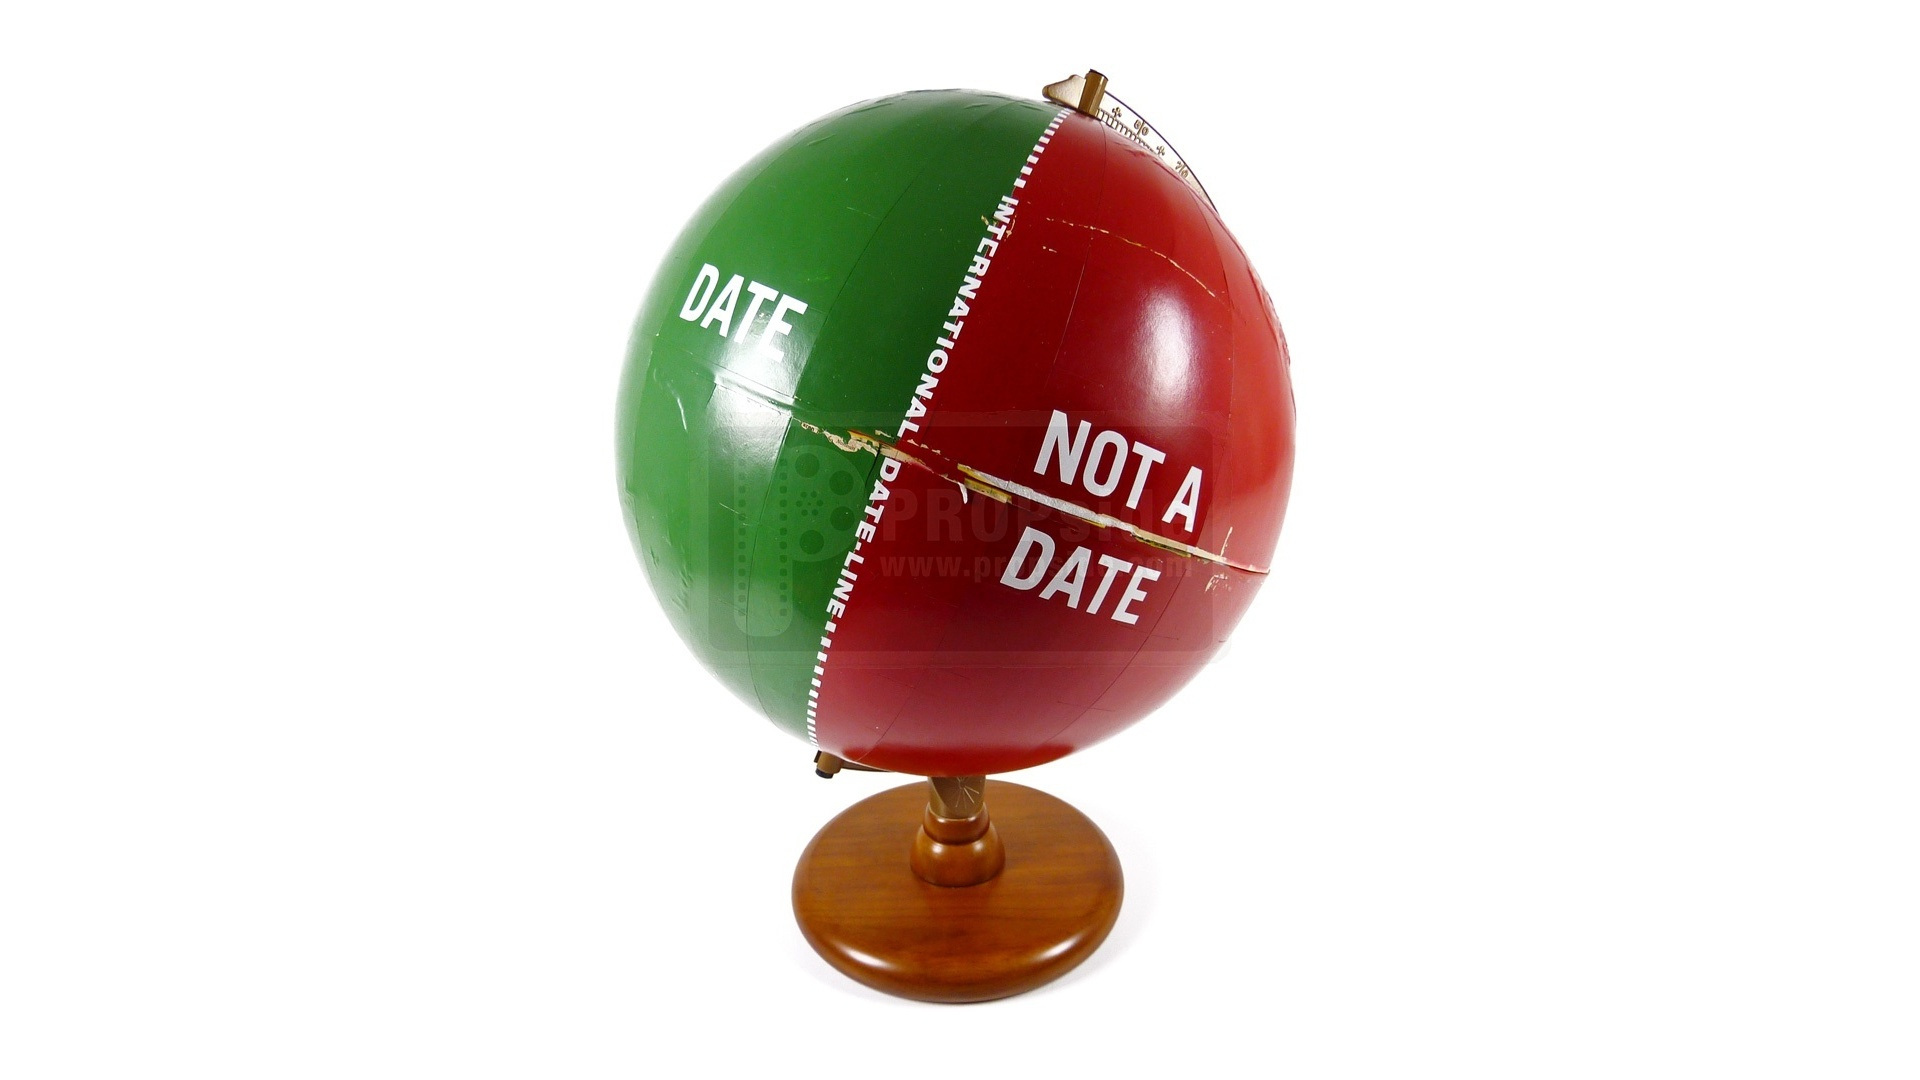 Barney Stinson\'s Date Line Globe - How I Met your Mother at PROPside.com